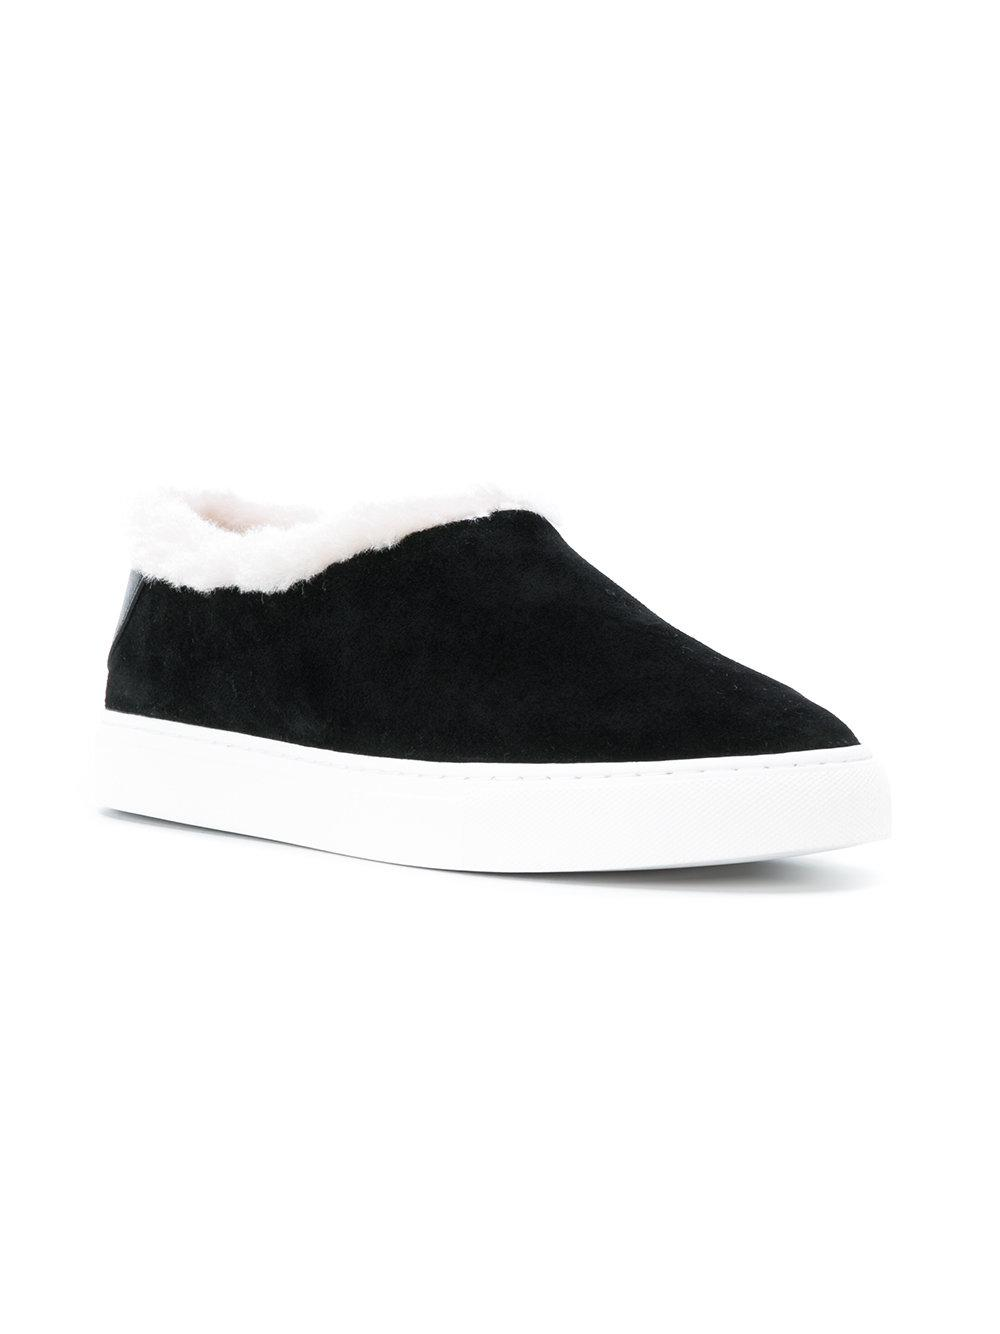 2a21c48fc37 Lyst - Tory Burch Miller Shearling Sneakers in Black